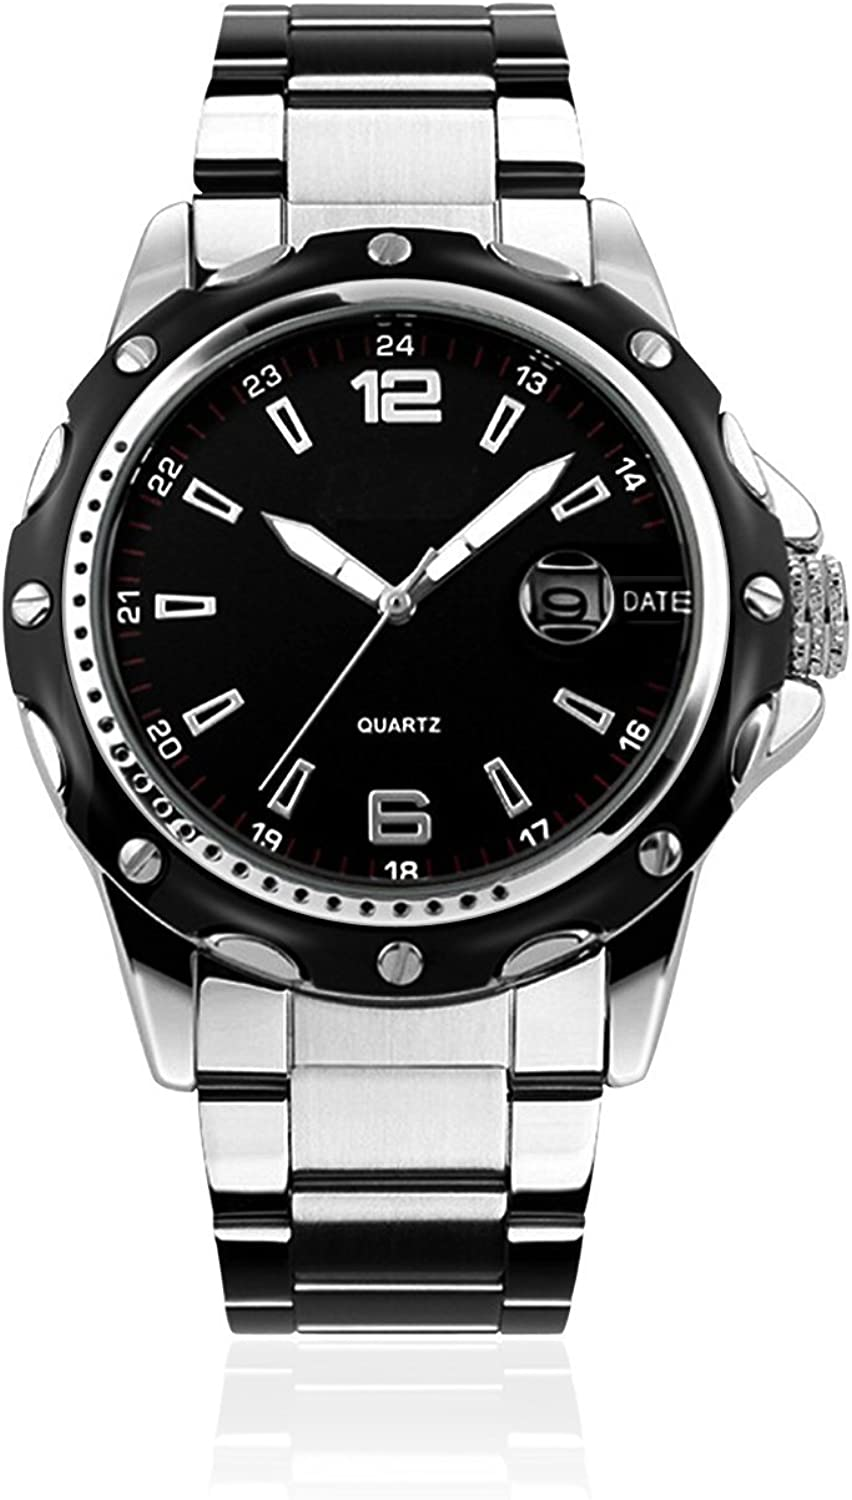 Mens Stainless Steel Band Analog Quartz Unique Business Casual Waterproof Dress Wrist Watch, Classic Design Calendar Date Window – Black